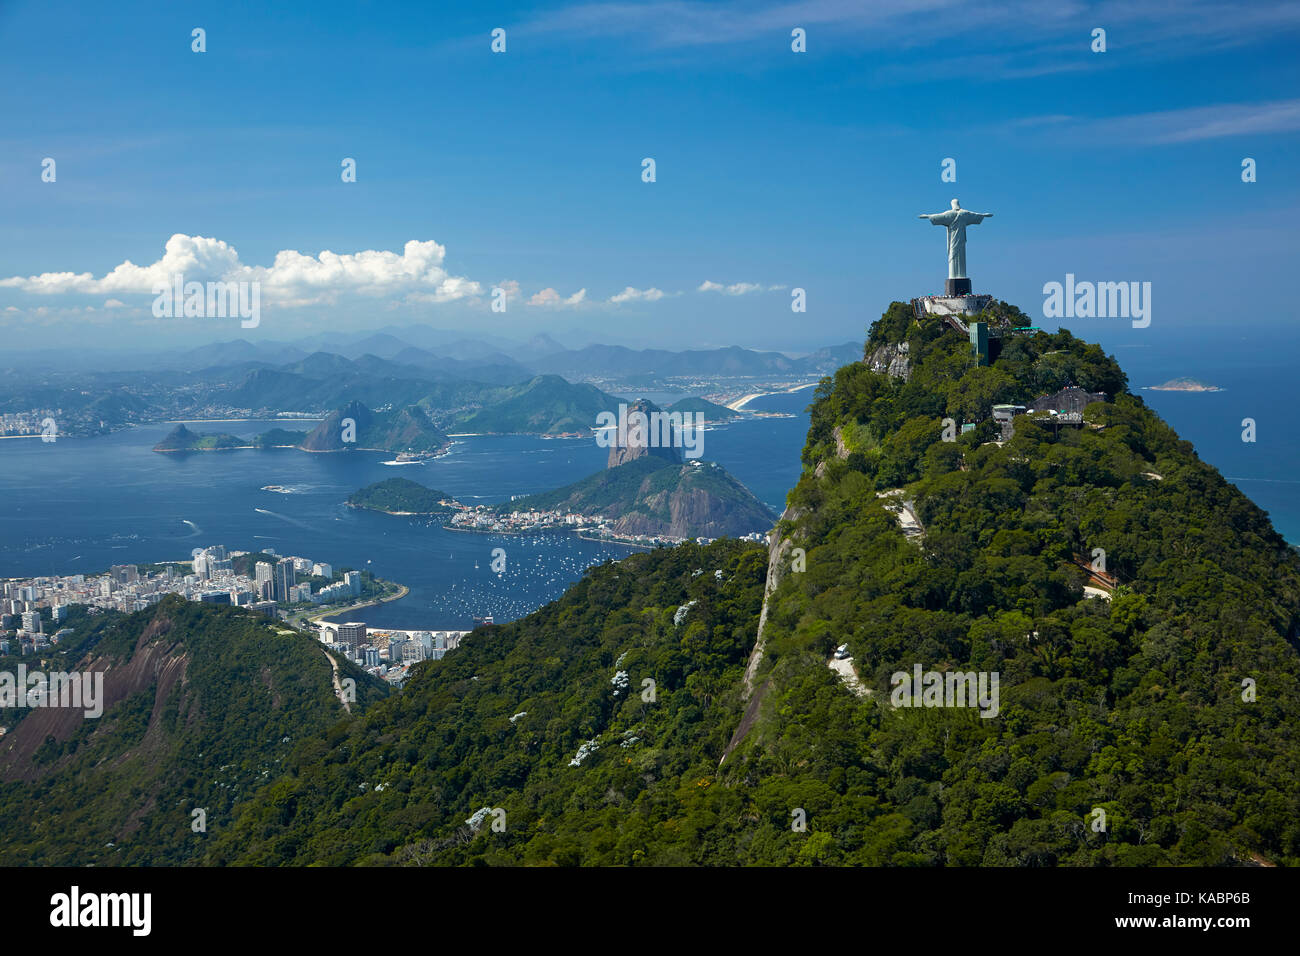 Christ the Redeemer statue atop Corcovado, and Sugarloaf Mountain, Rio de Janeiro, Brazil, South America - aerial - Stock Image